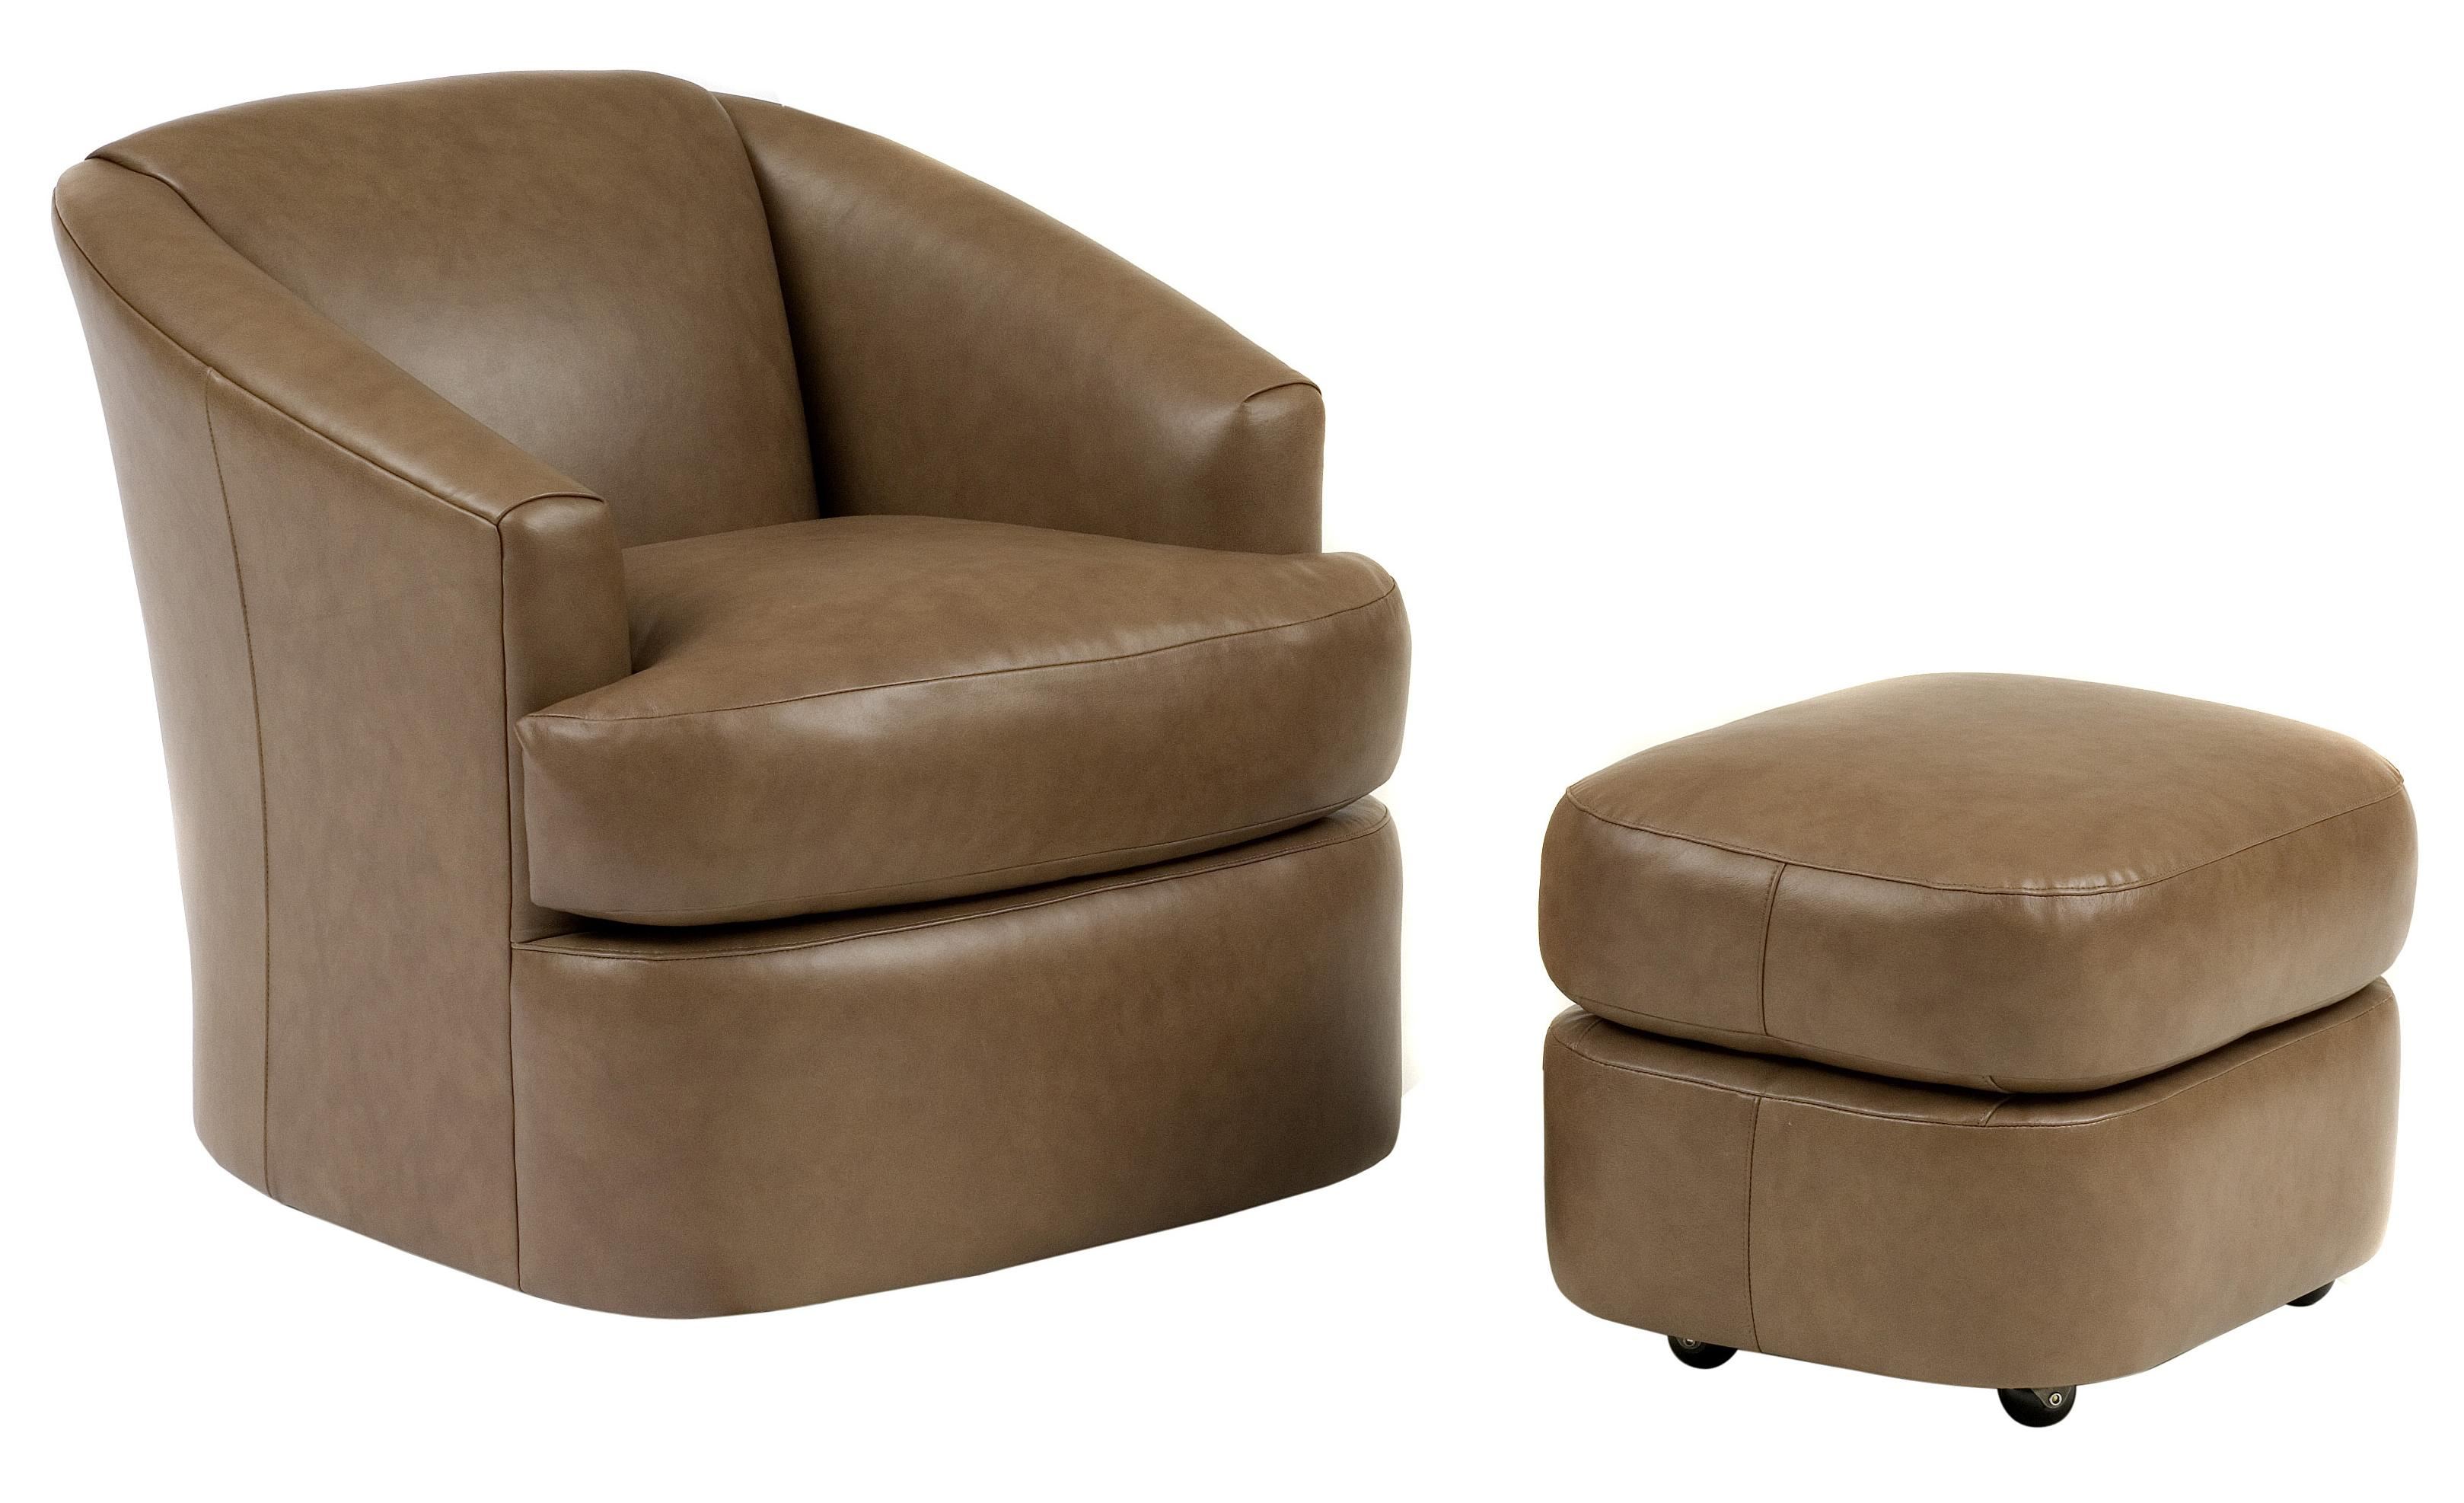 Modern Barrel Chair Contemporary Swivel Barrel Chair And Ottoman With Casters